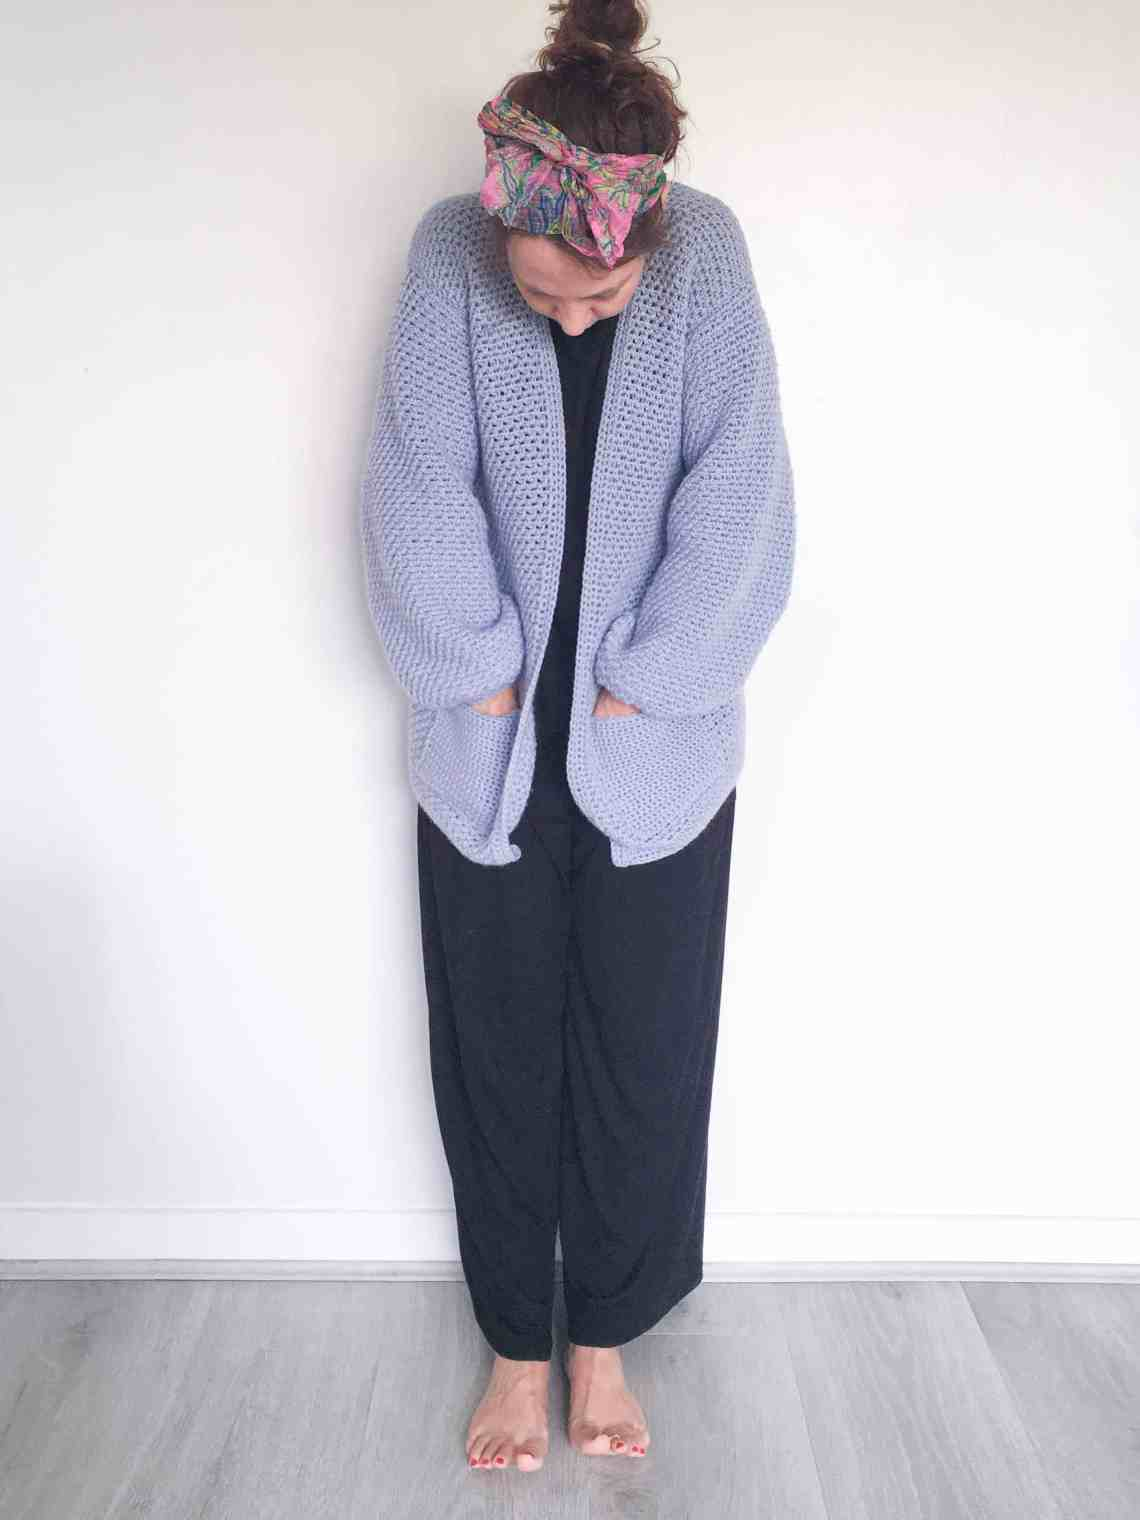 Woman in crochet cardigan looking at toes